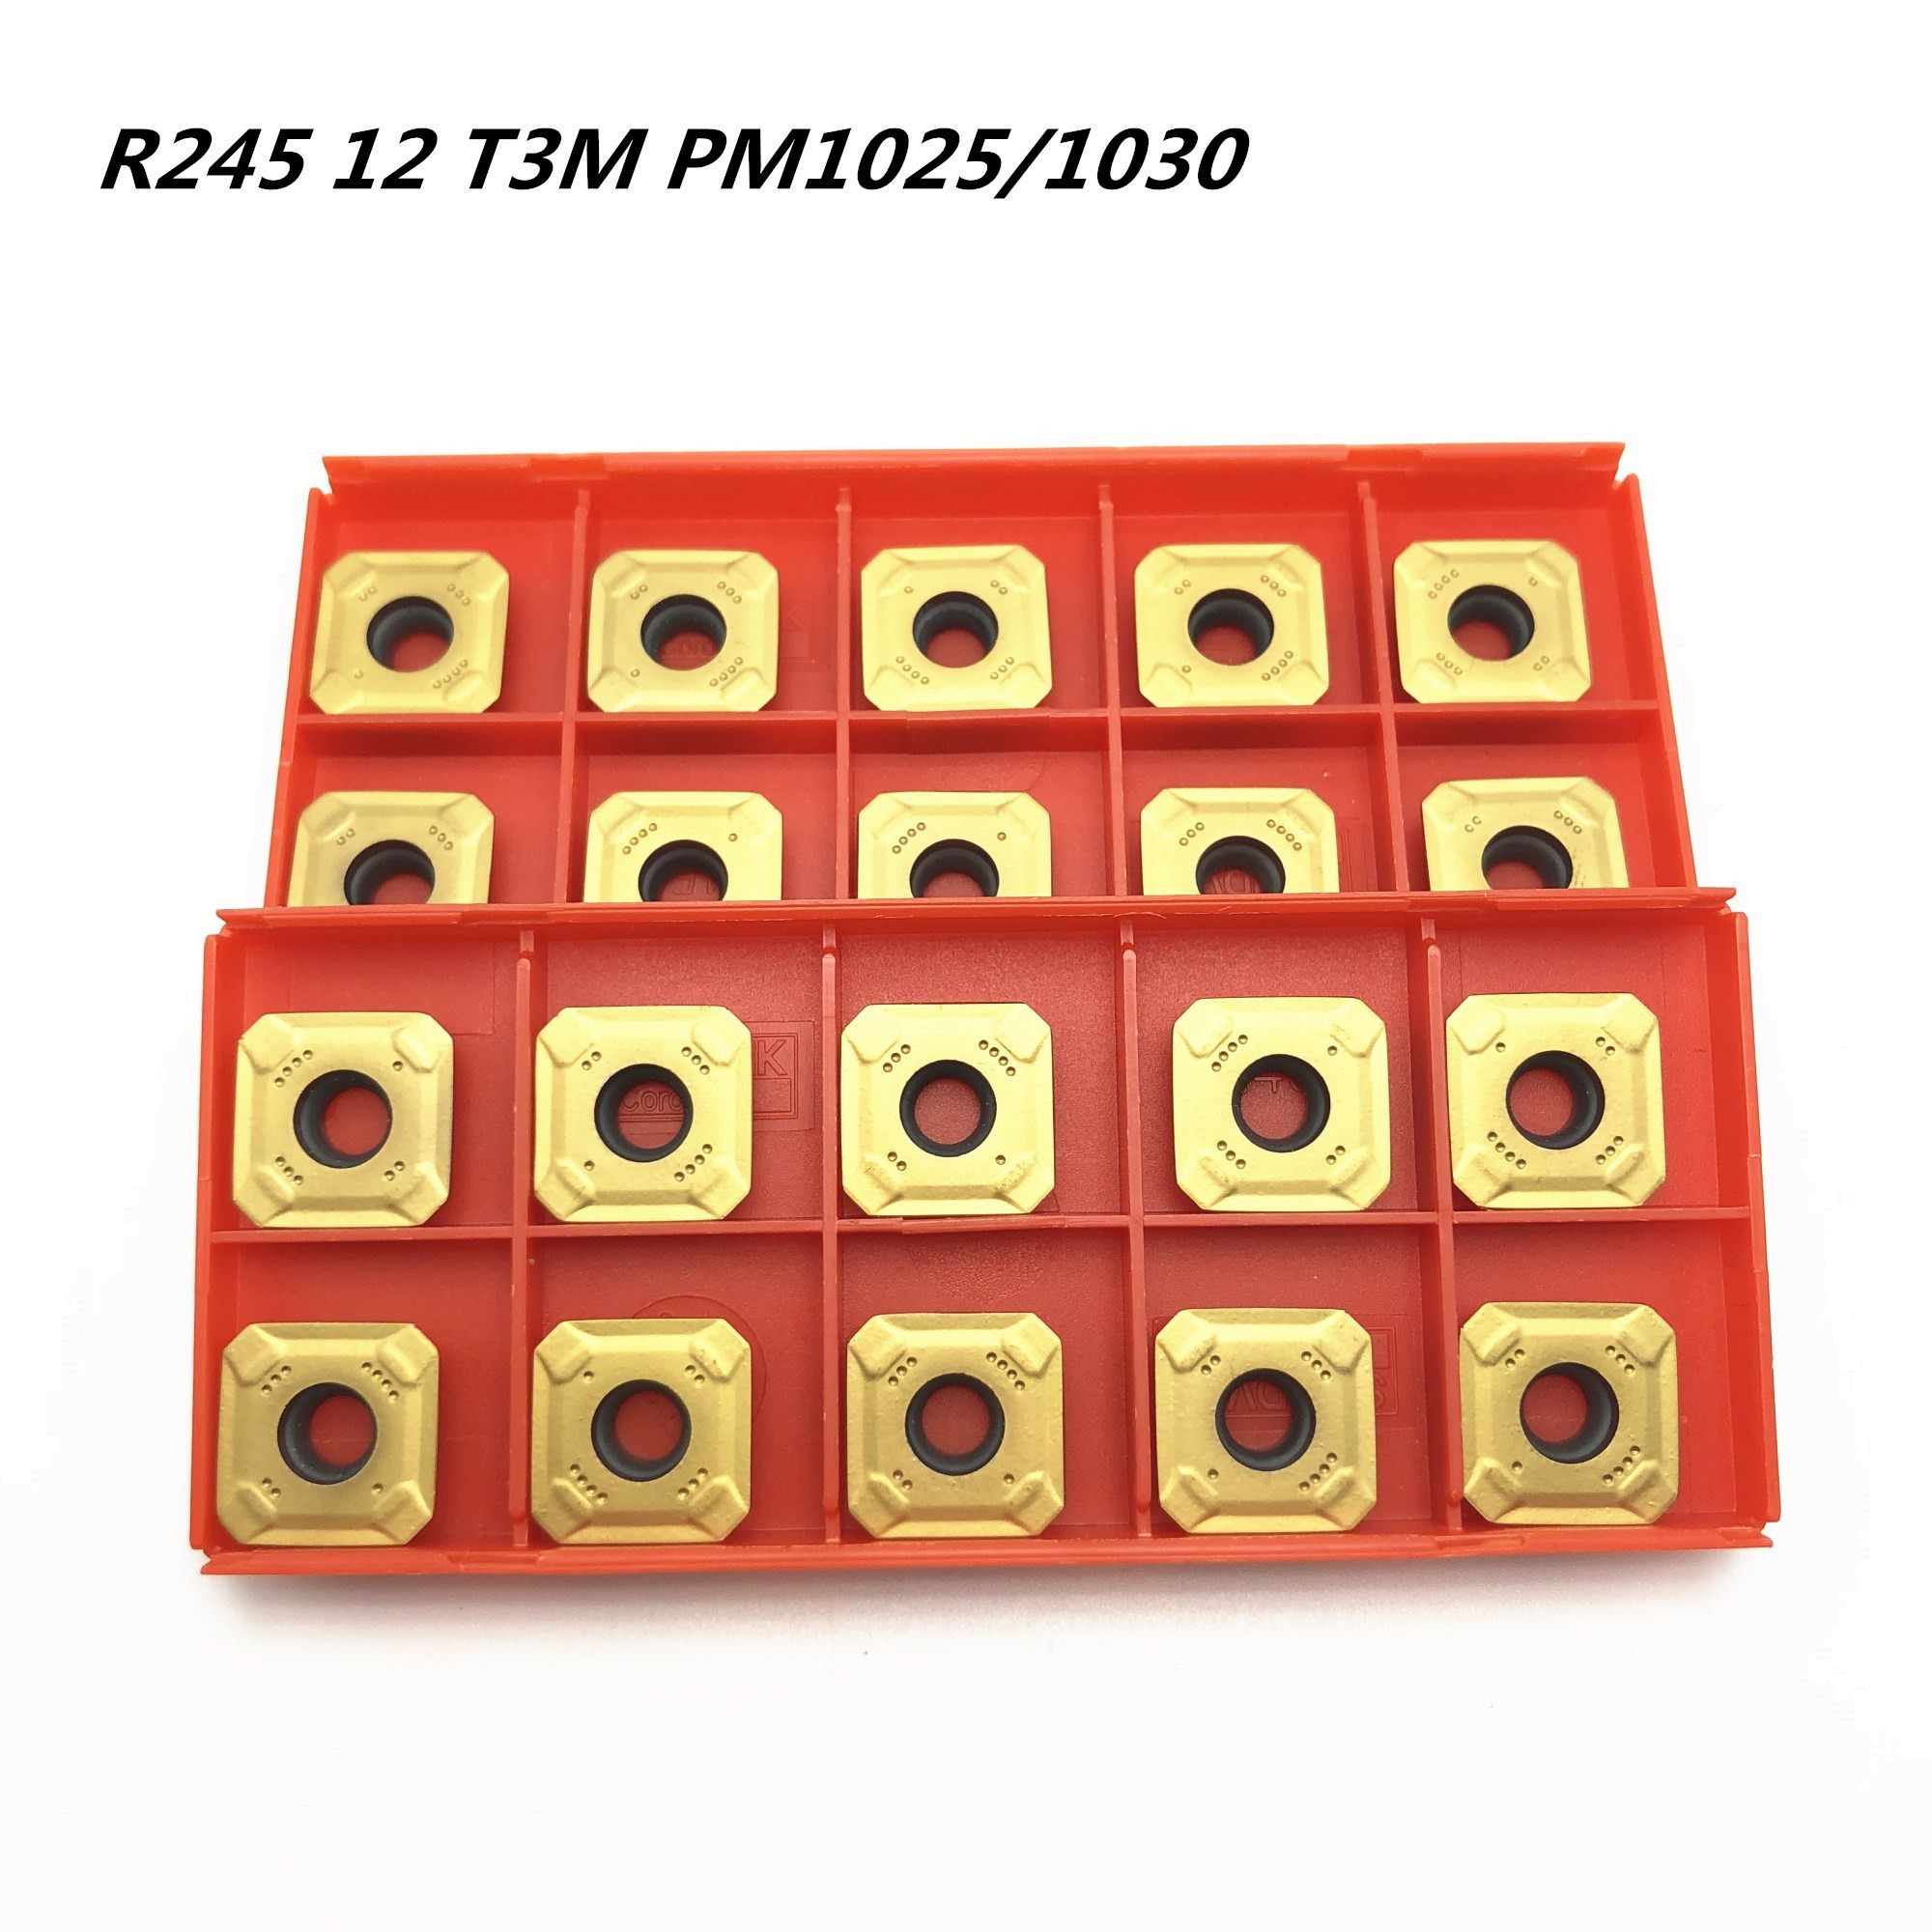 Milling cutter R245-12T3M-PM 1025 1030 4240 high quality carbide milling cutter R245 12T3 CNC lathe cutterMilling cutter R245-12T3M-PM 1025 1030 4240 high quality carbide milling cutter R245 12T3 CNC lathe cutter